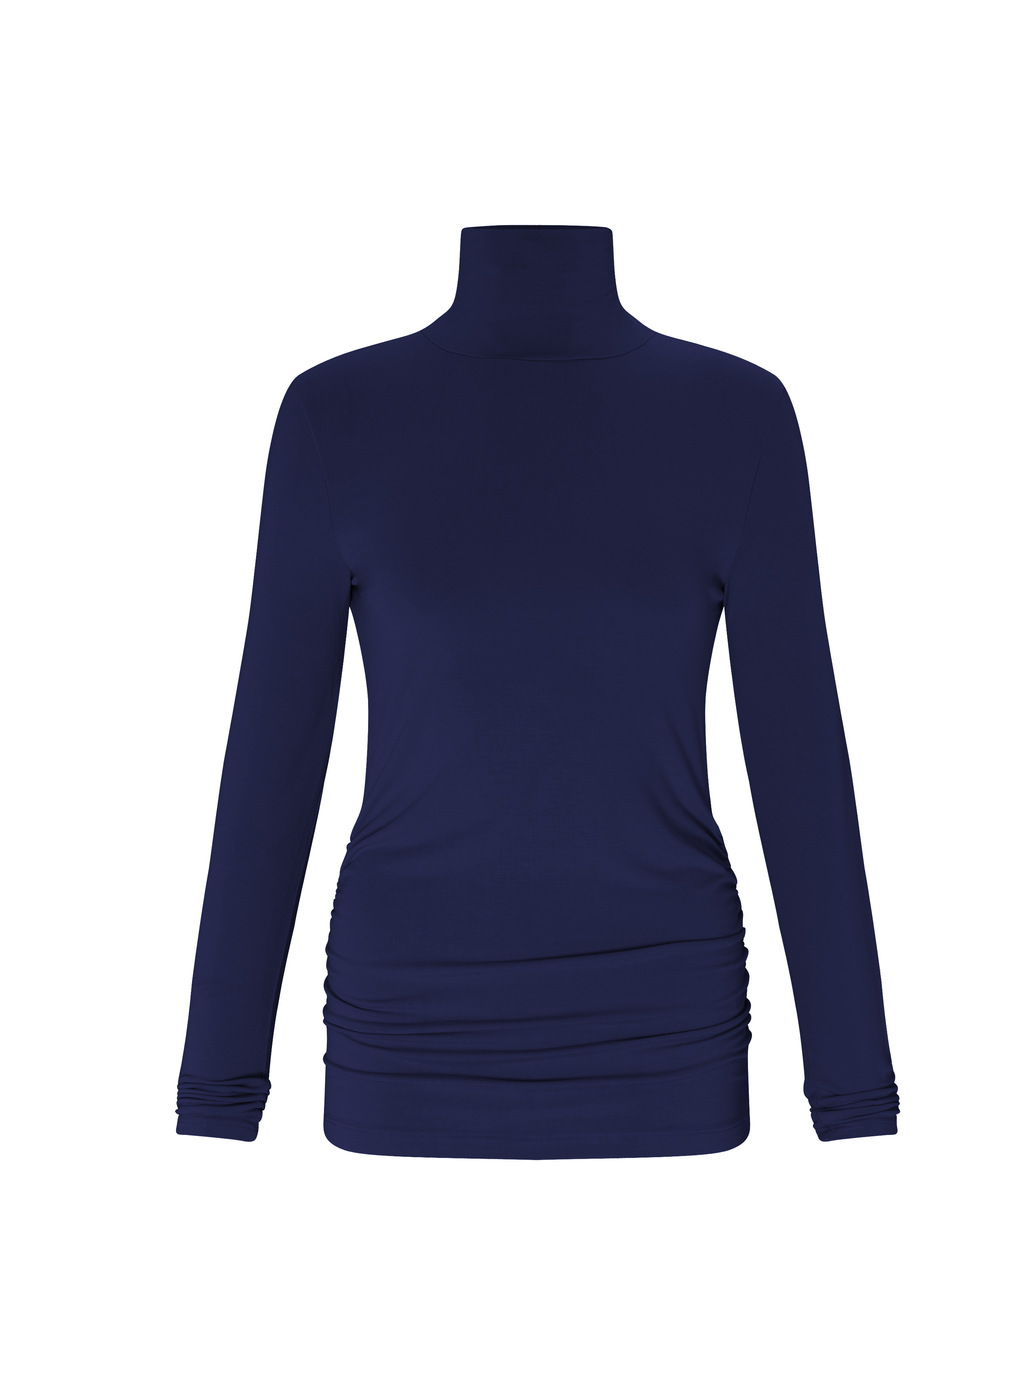 Womenswear Turtleneck - pattern: plain; neckline: roll neck; predominant colour: navy; occasions: casual; length: standard; style: top; fibres: viscose/rayon - stretch; fit: tight; sleeve length: long sleeve; sleeve style: standard; texture group: jersey - clingy; pattern type: fabric; wardrobe: basic; season: a/w 2016